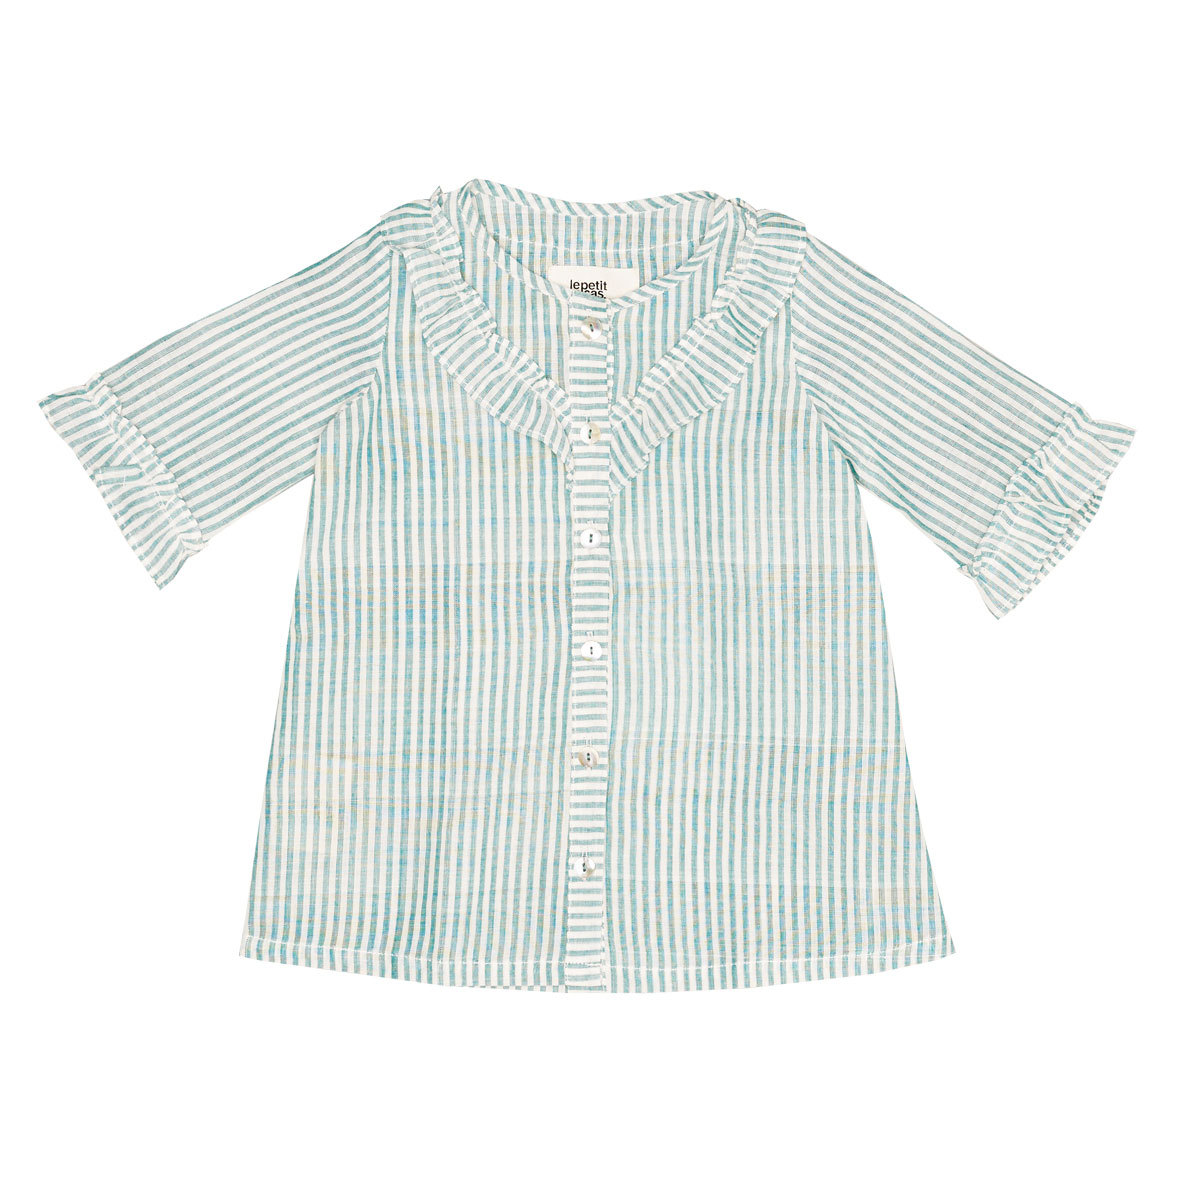 Hauts bébé Top Vanessa - Green Stripes - 2 Ans Top Vanessa - Green Stripes - 2 Ans